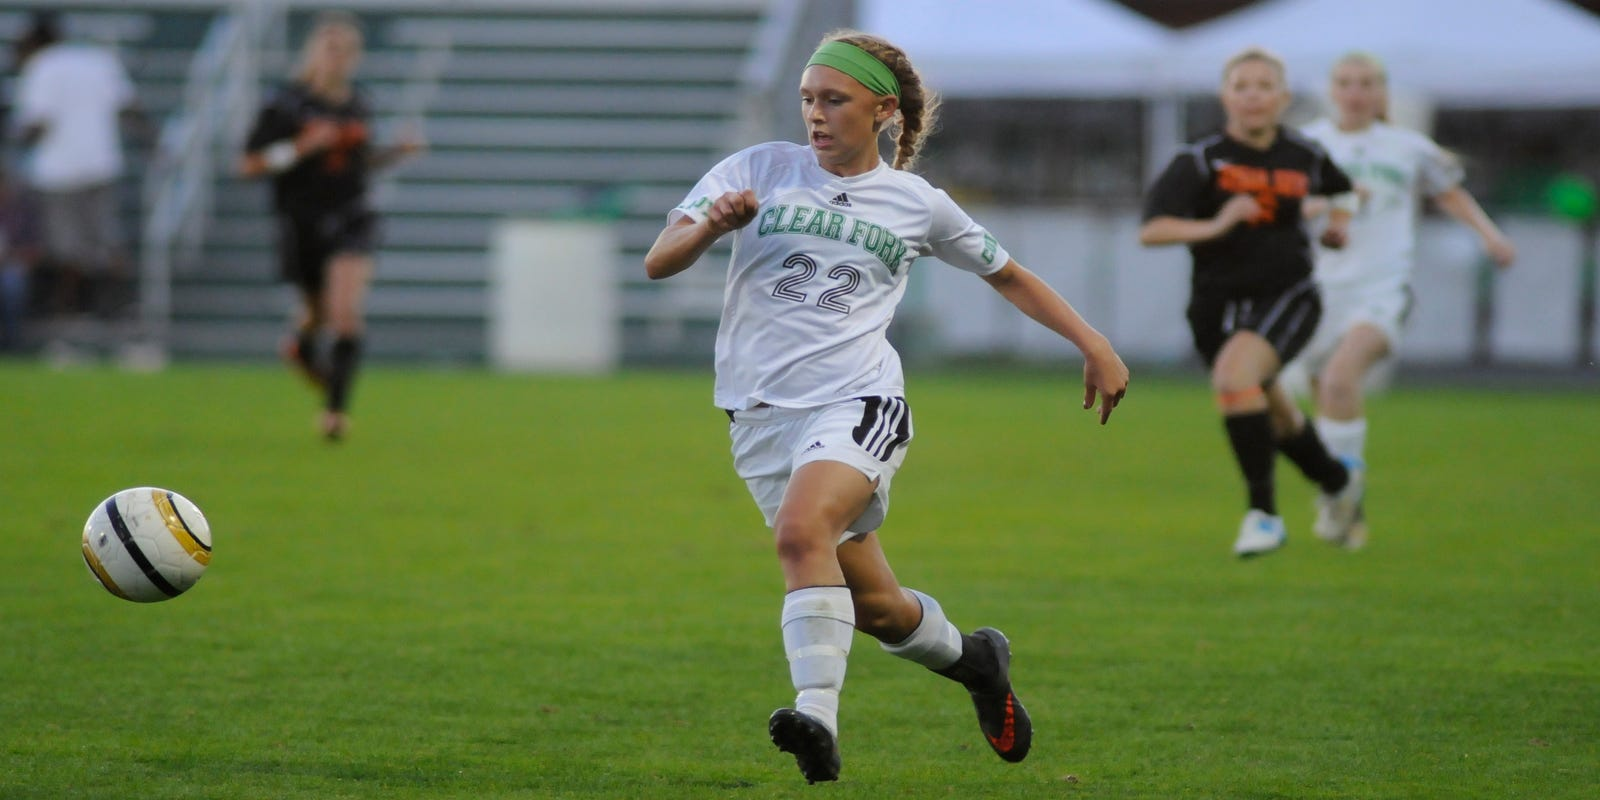 Weekly soccer statistics for Mansfield-area